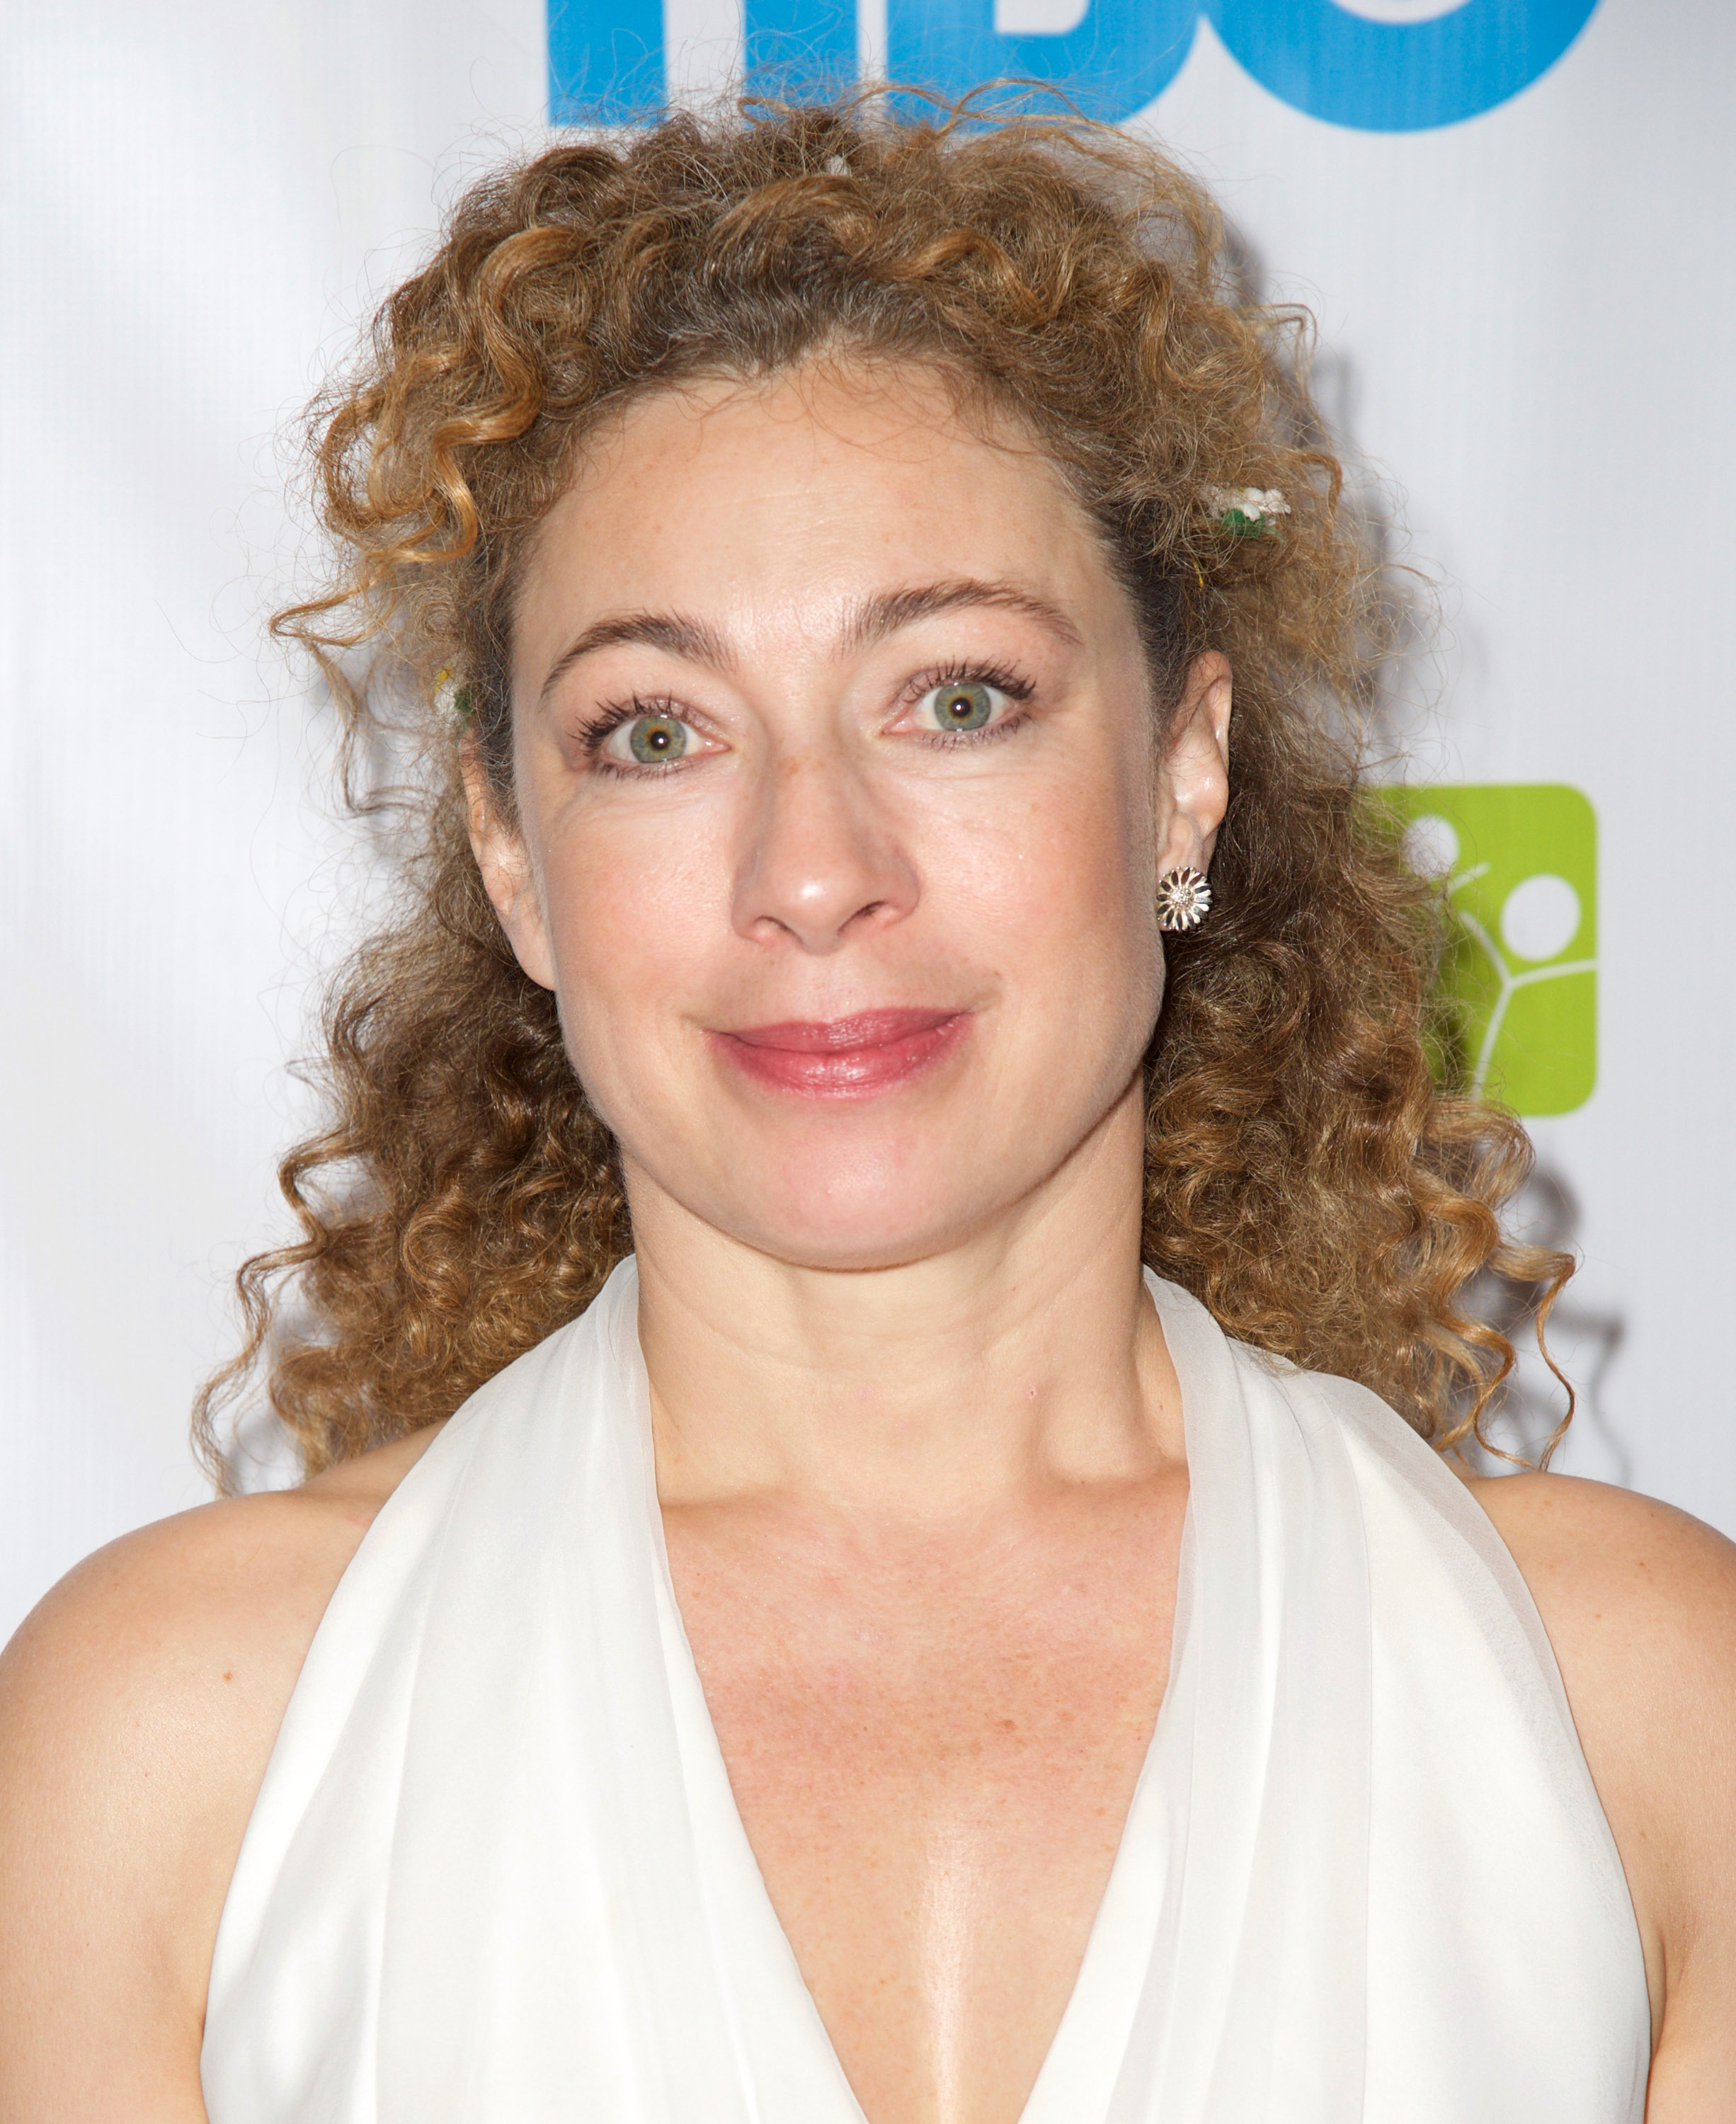 Alex Kingston at the Raise A Child 3rd Annual Honors Gala in Hollywood on April 26, 2015.